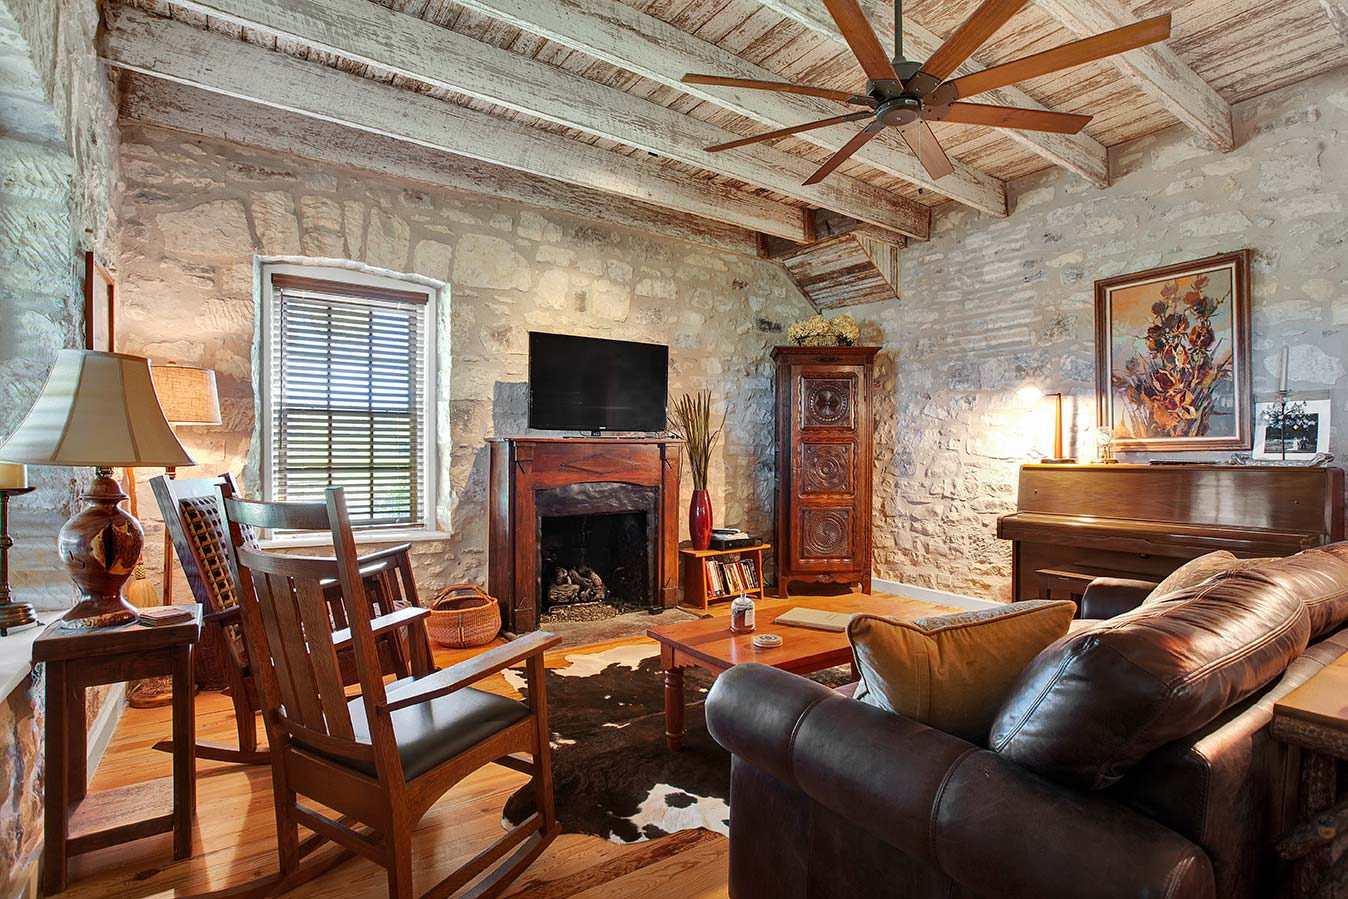 fredericksburg-realty-squaw-creek-ranch-real-estate-land-for-sale-home-house-historic-3.jpg